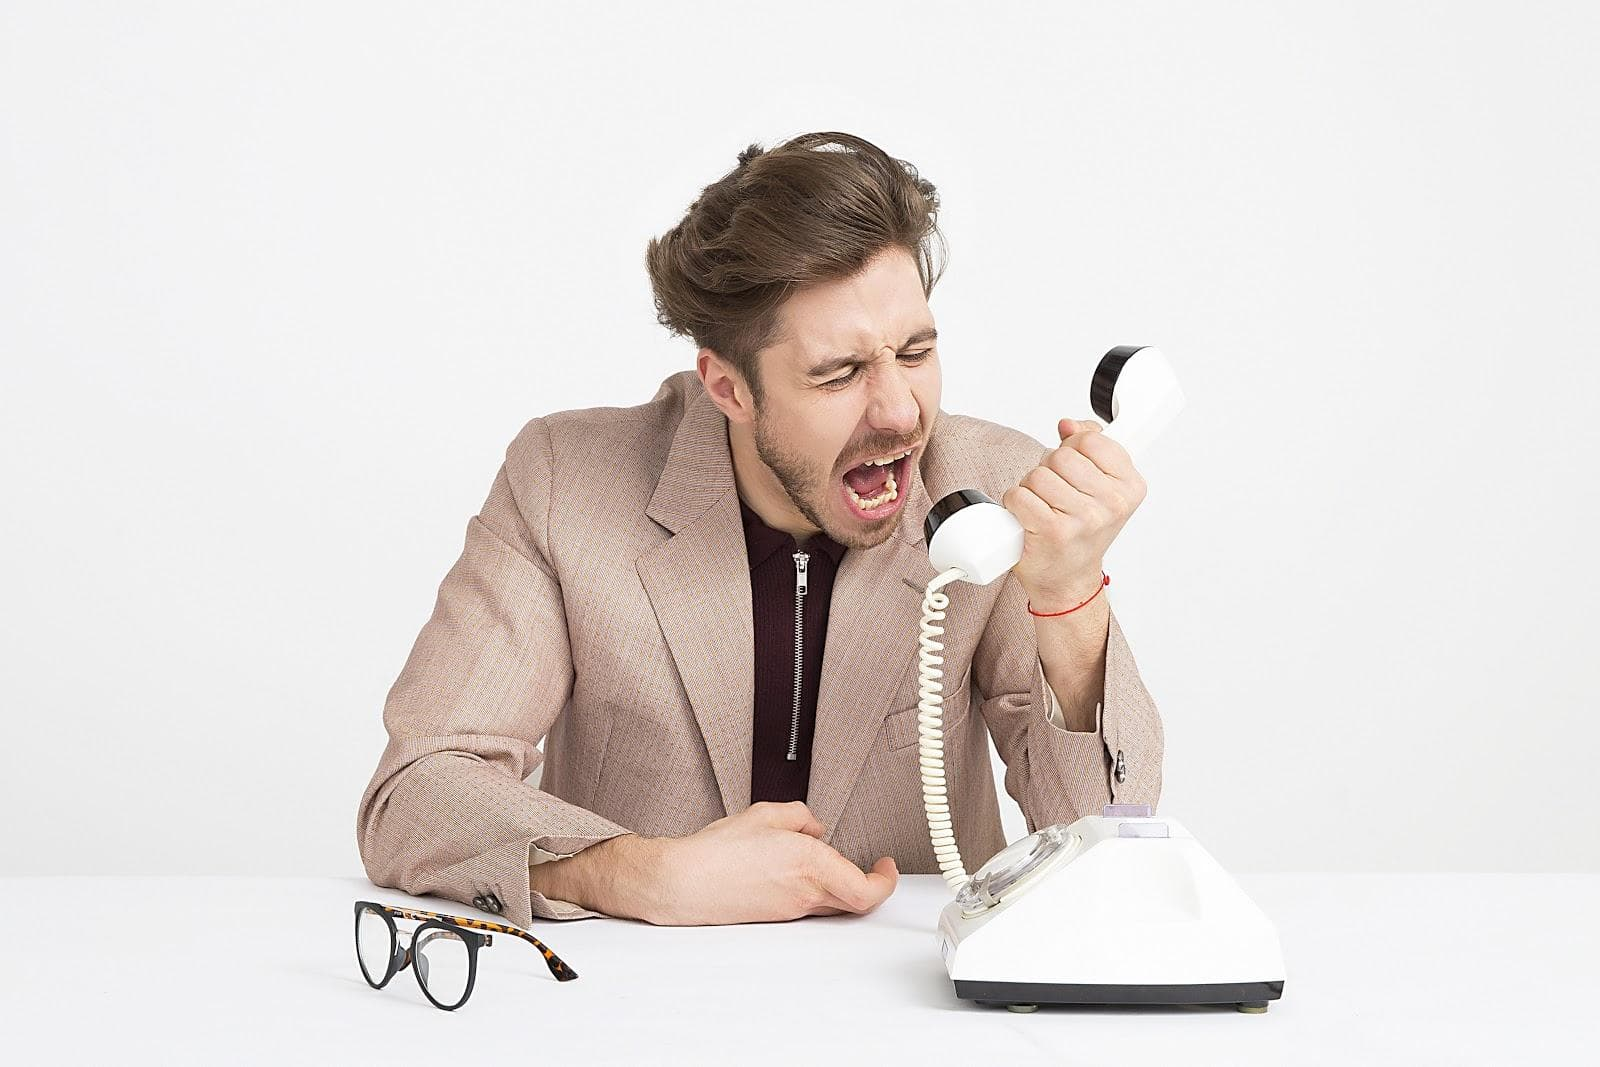 Person yelling into telephone